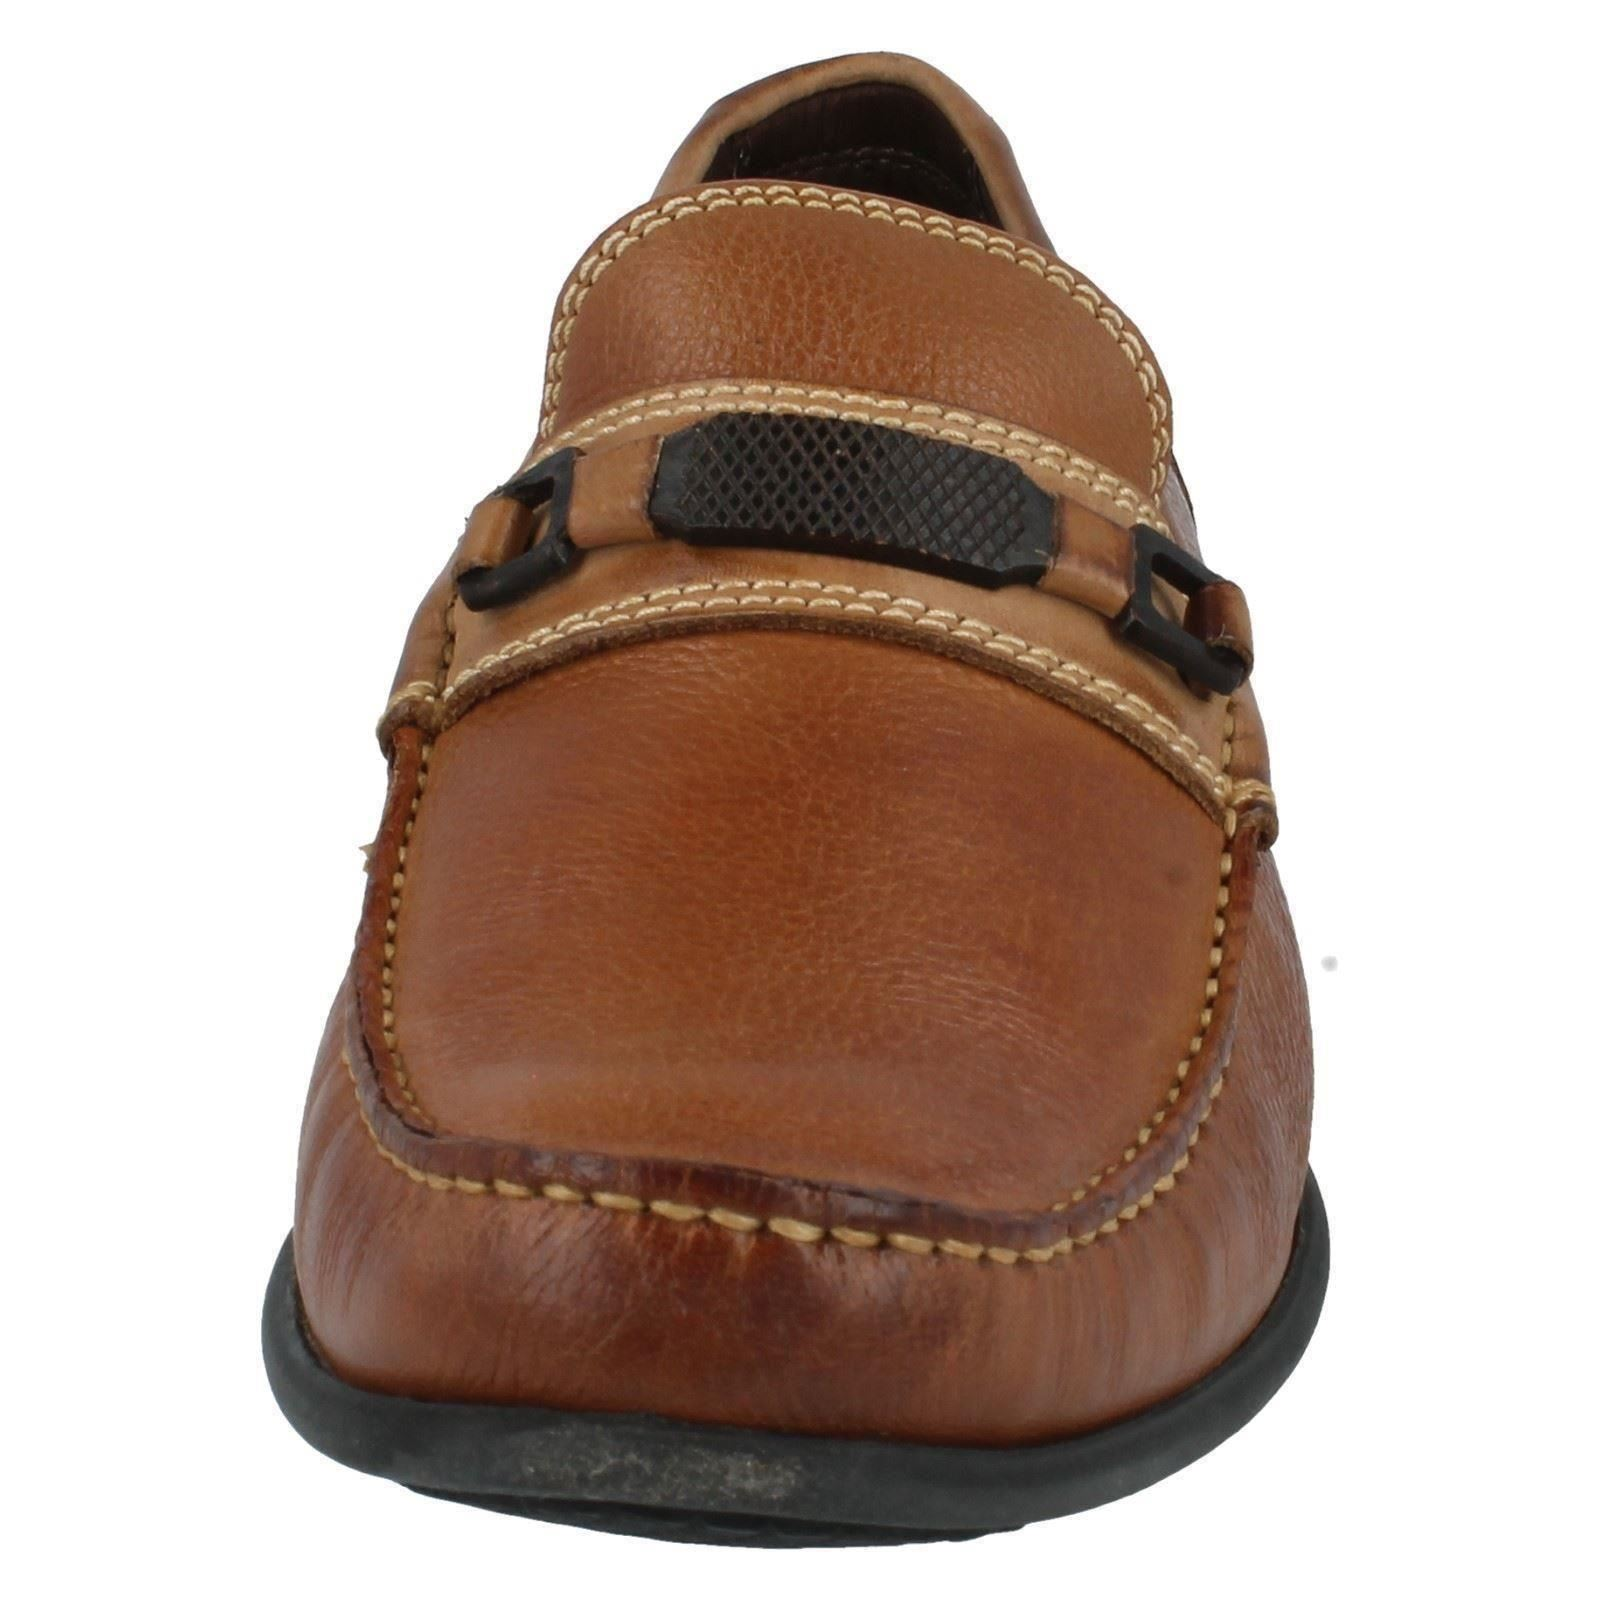 Mens Anatomic & Co 'Lins' Shoes The Style K ~ K Style c09059